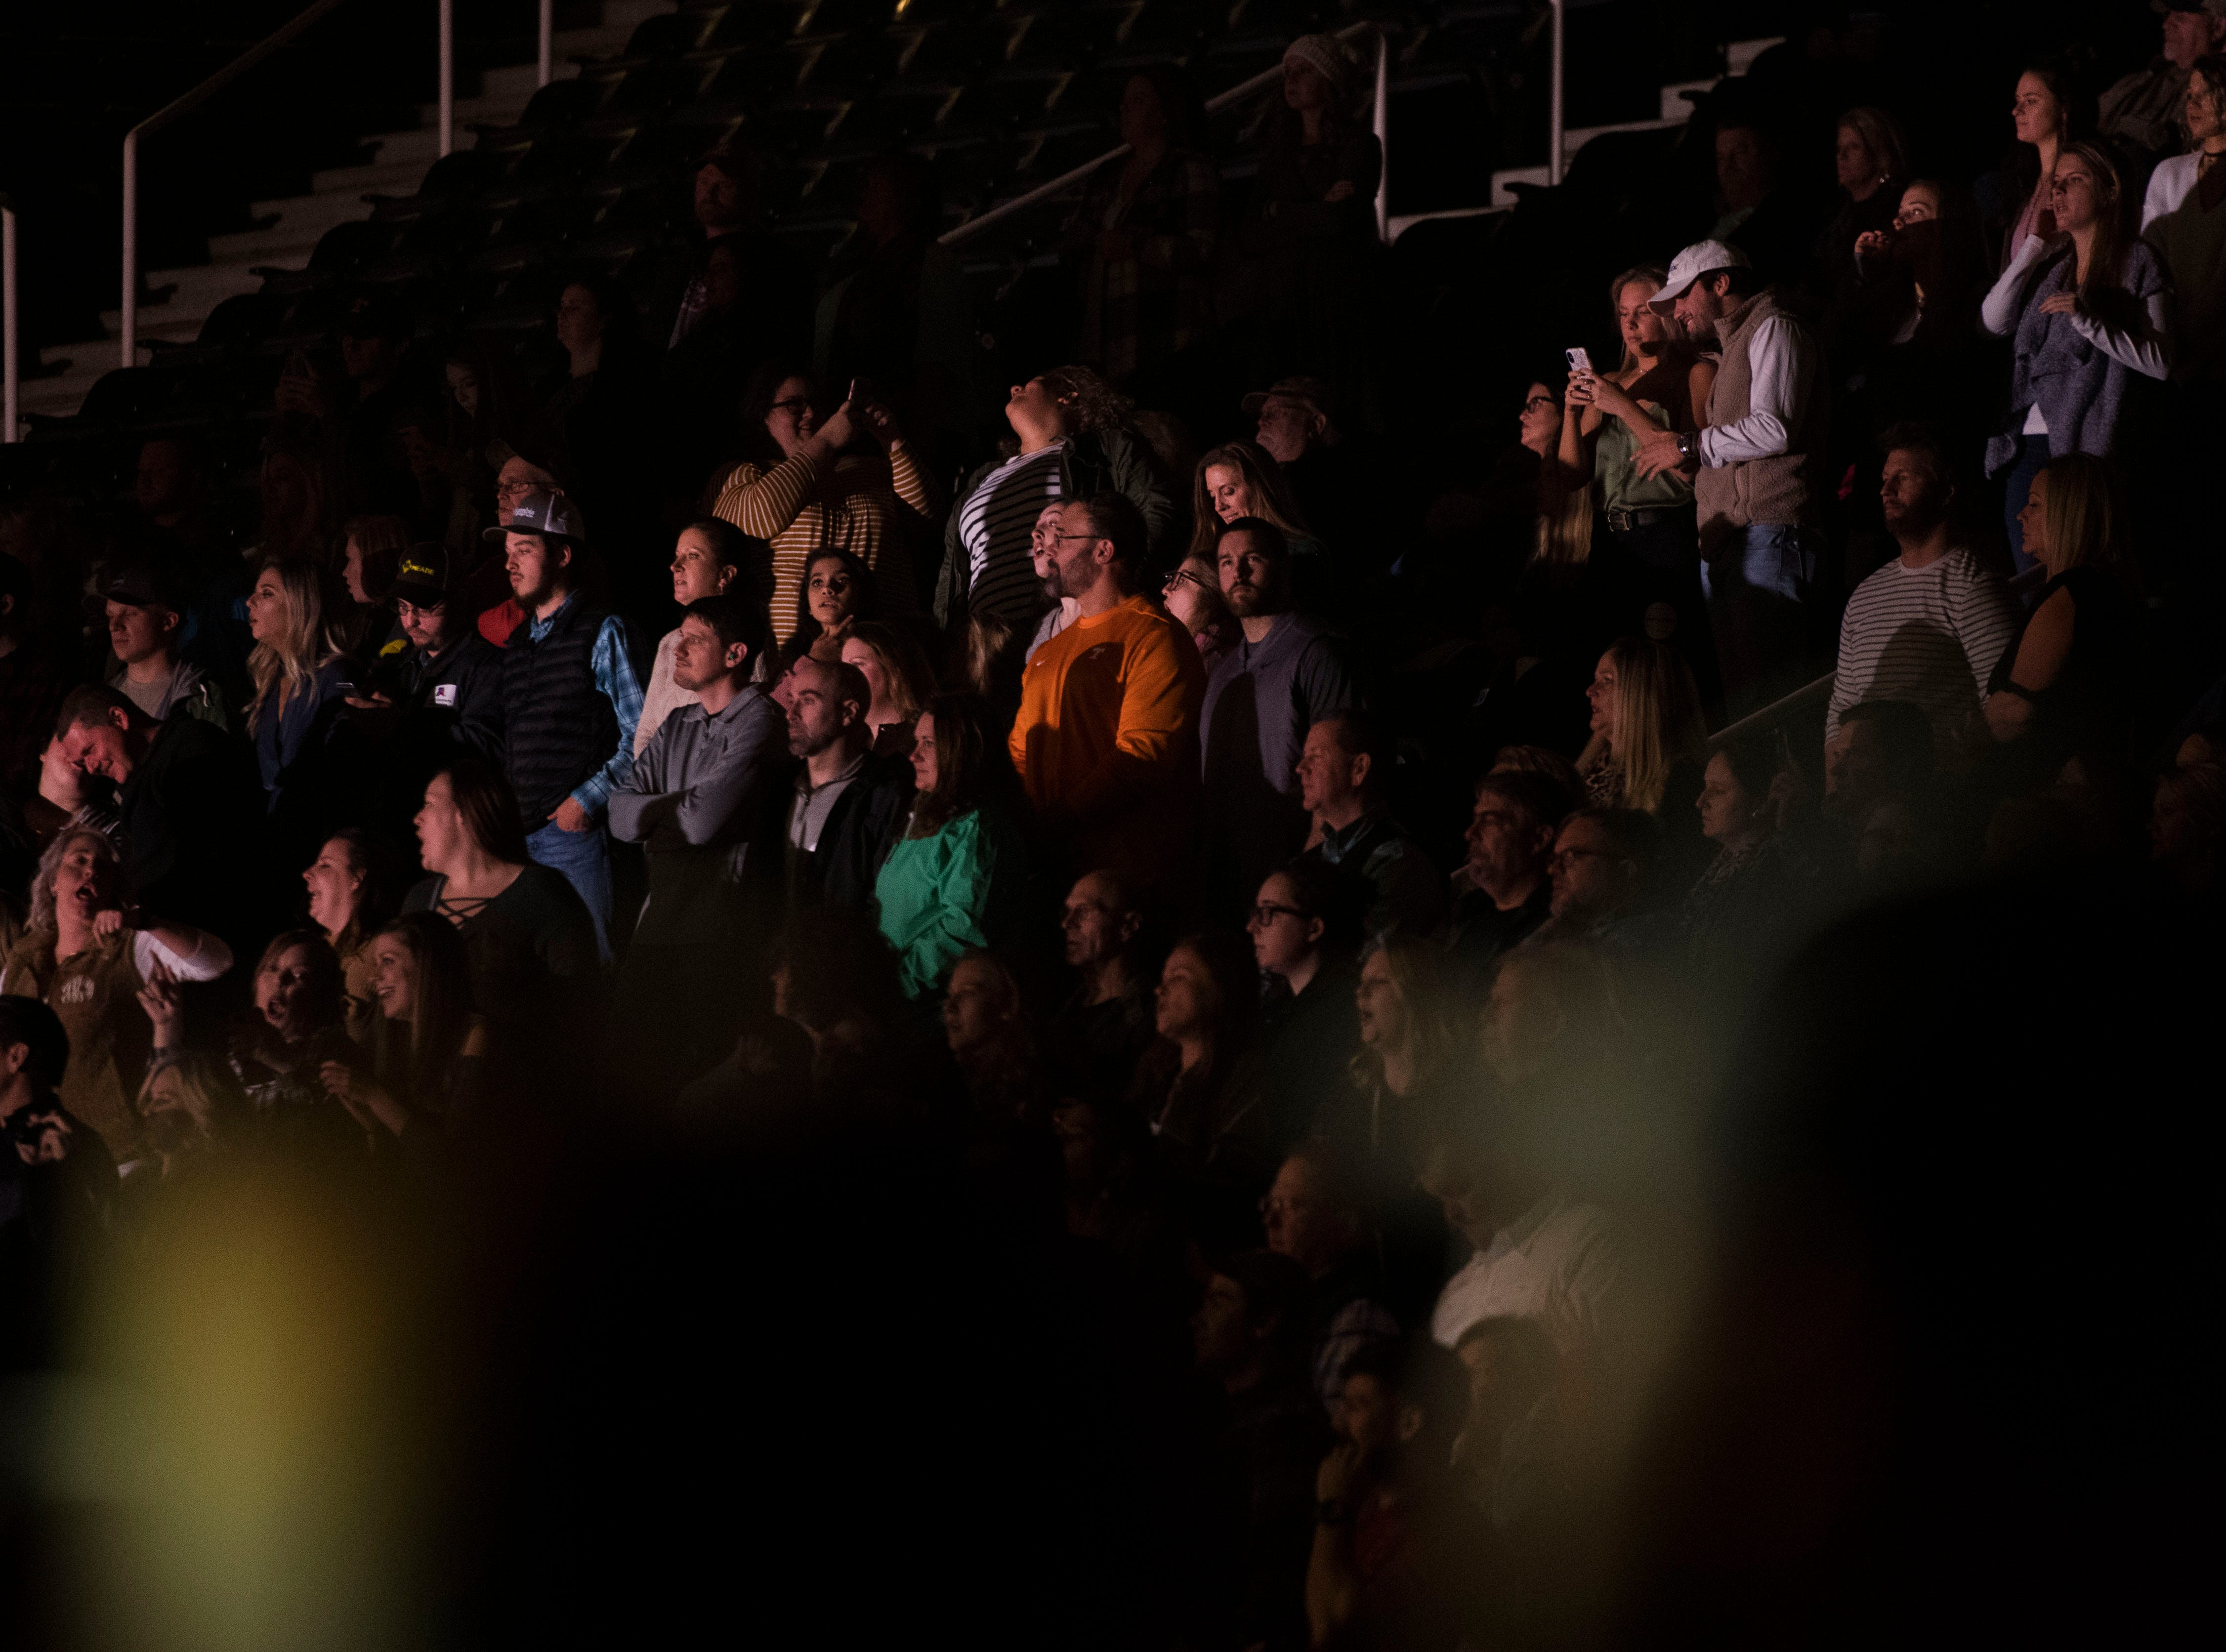 Fans listen during a Chris Young concert at Thompson-Boling Arena featuring openers Morgan Evans and Dan + Shay Thursday Nov. 29, 2018.